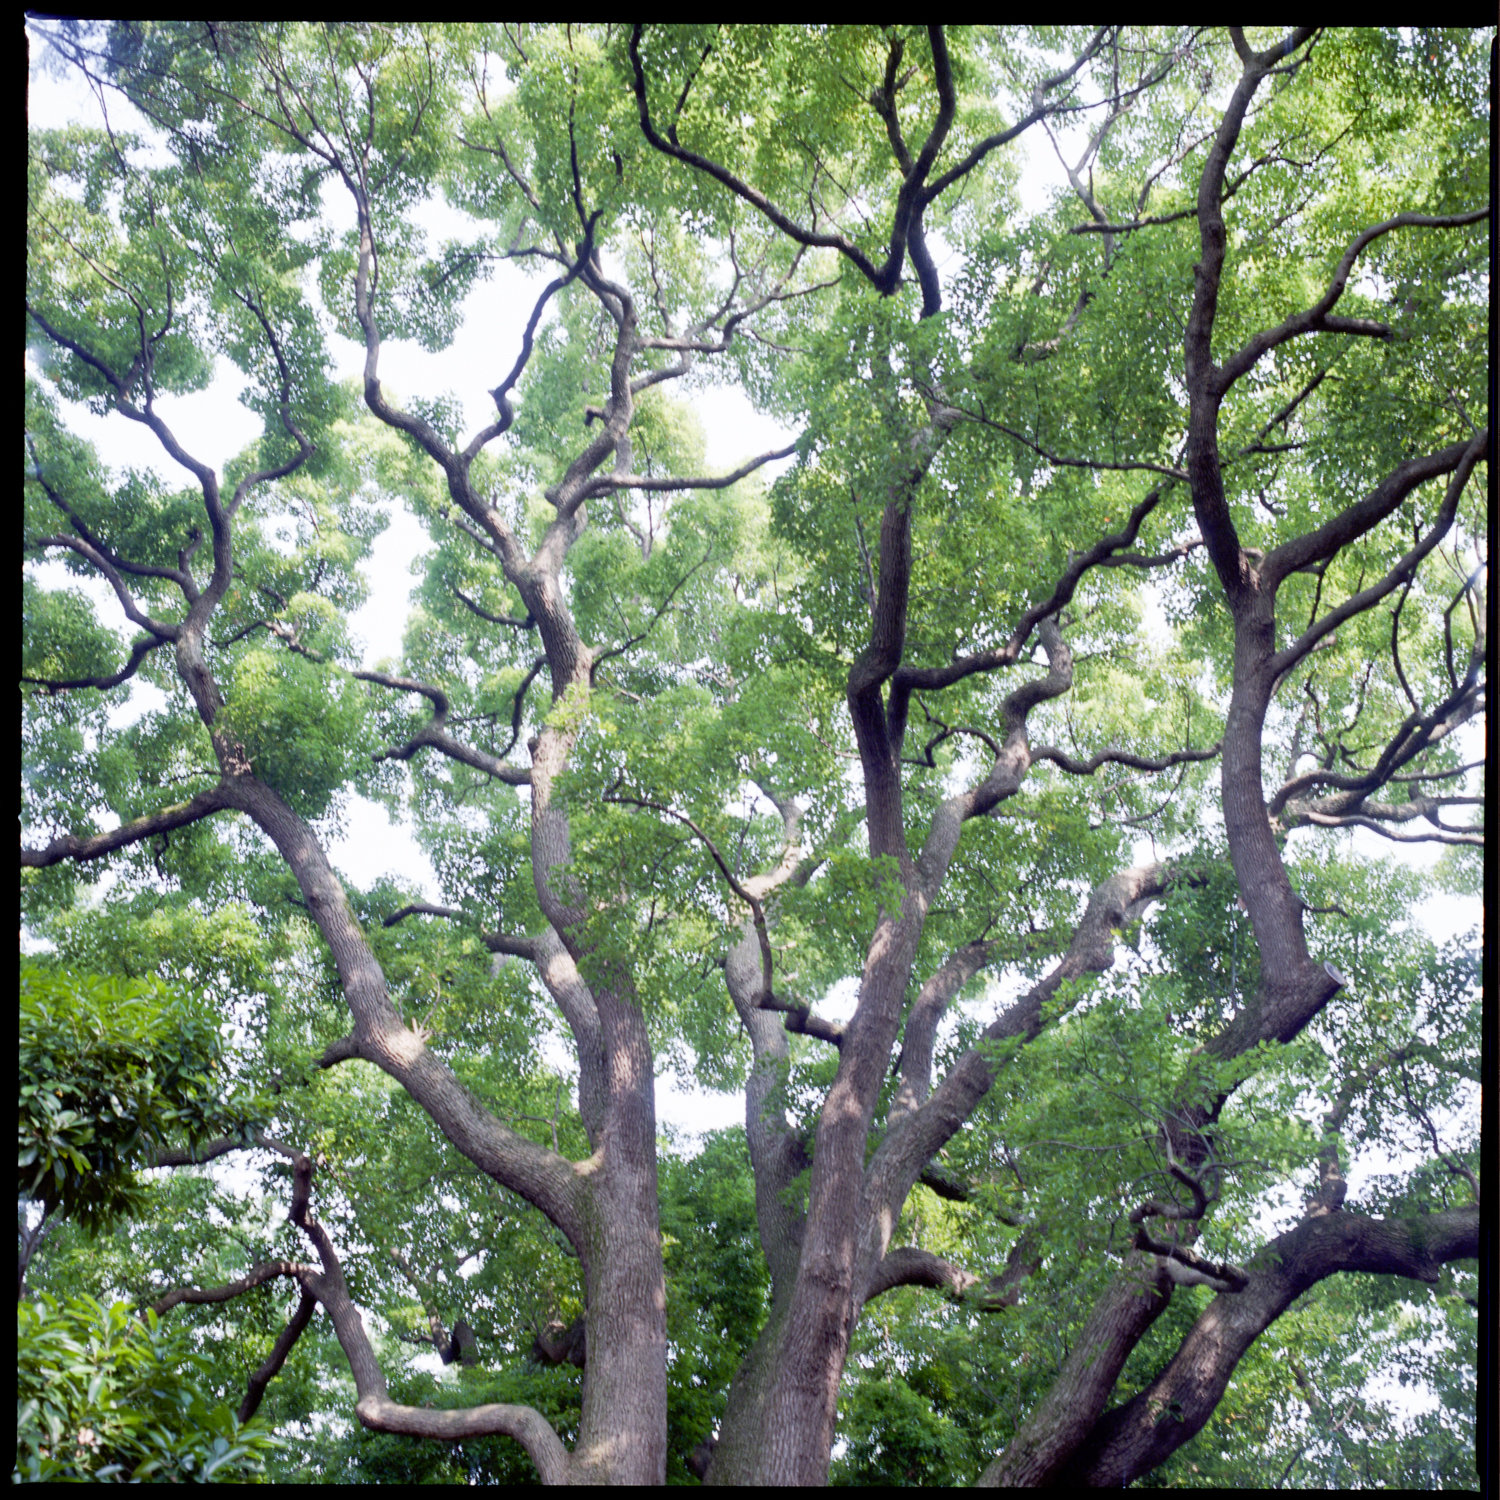 forest_05Jul2015_004